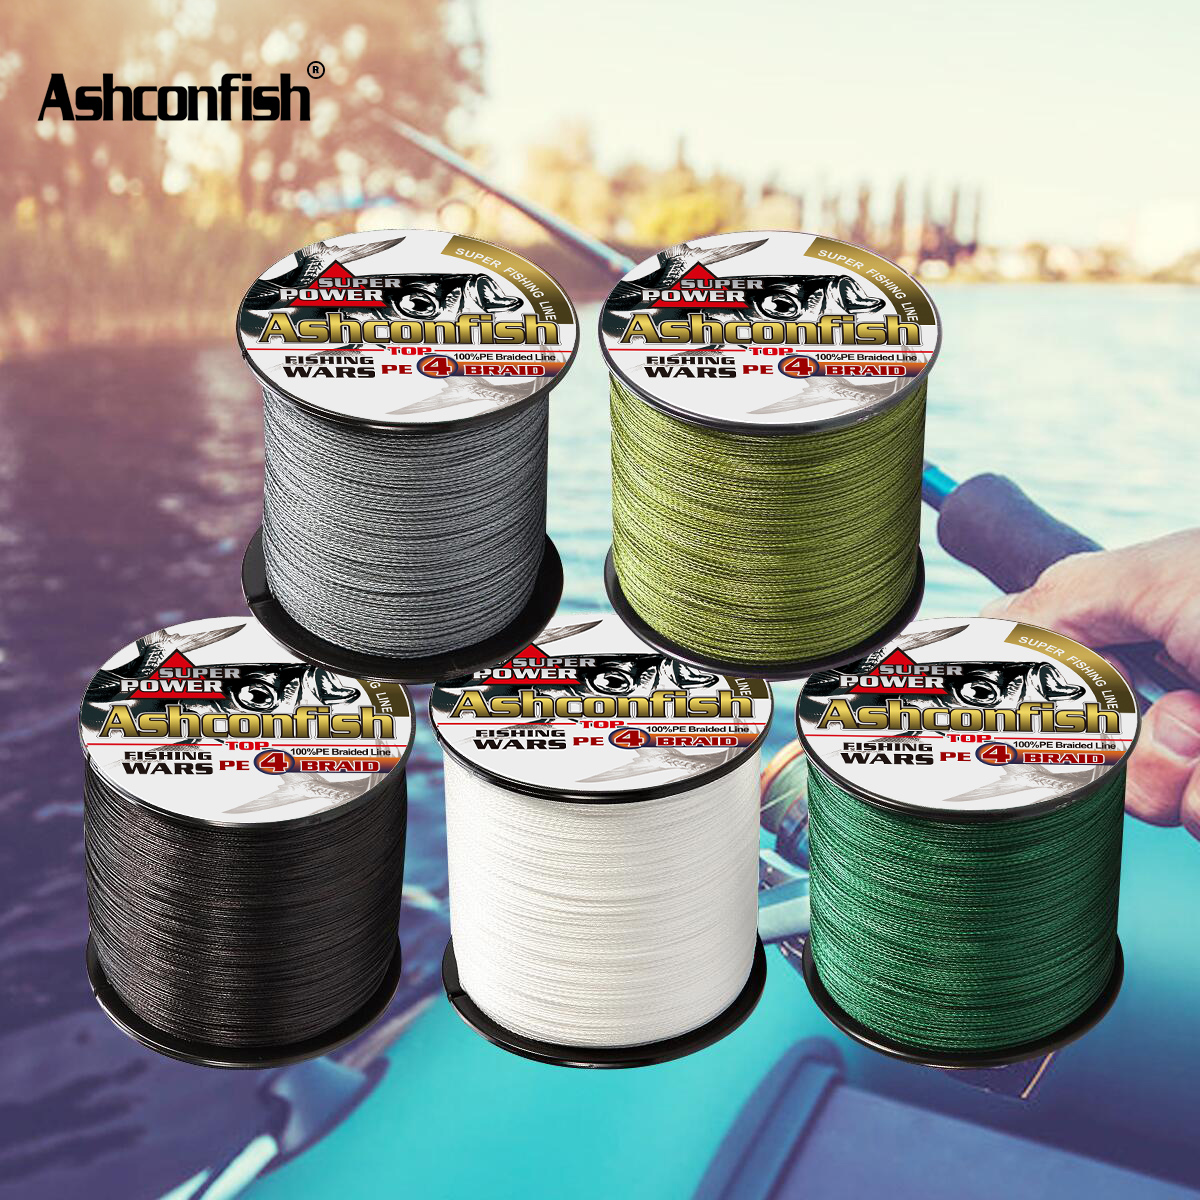 Super braired wire freashwater saltwater fishing line pe 500M 1000M spectra 4 weaves  carp fishing ice  jpan Multifilament x4